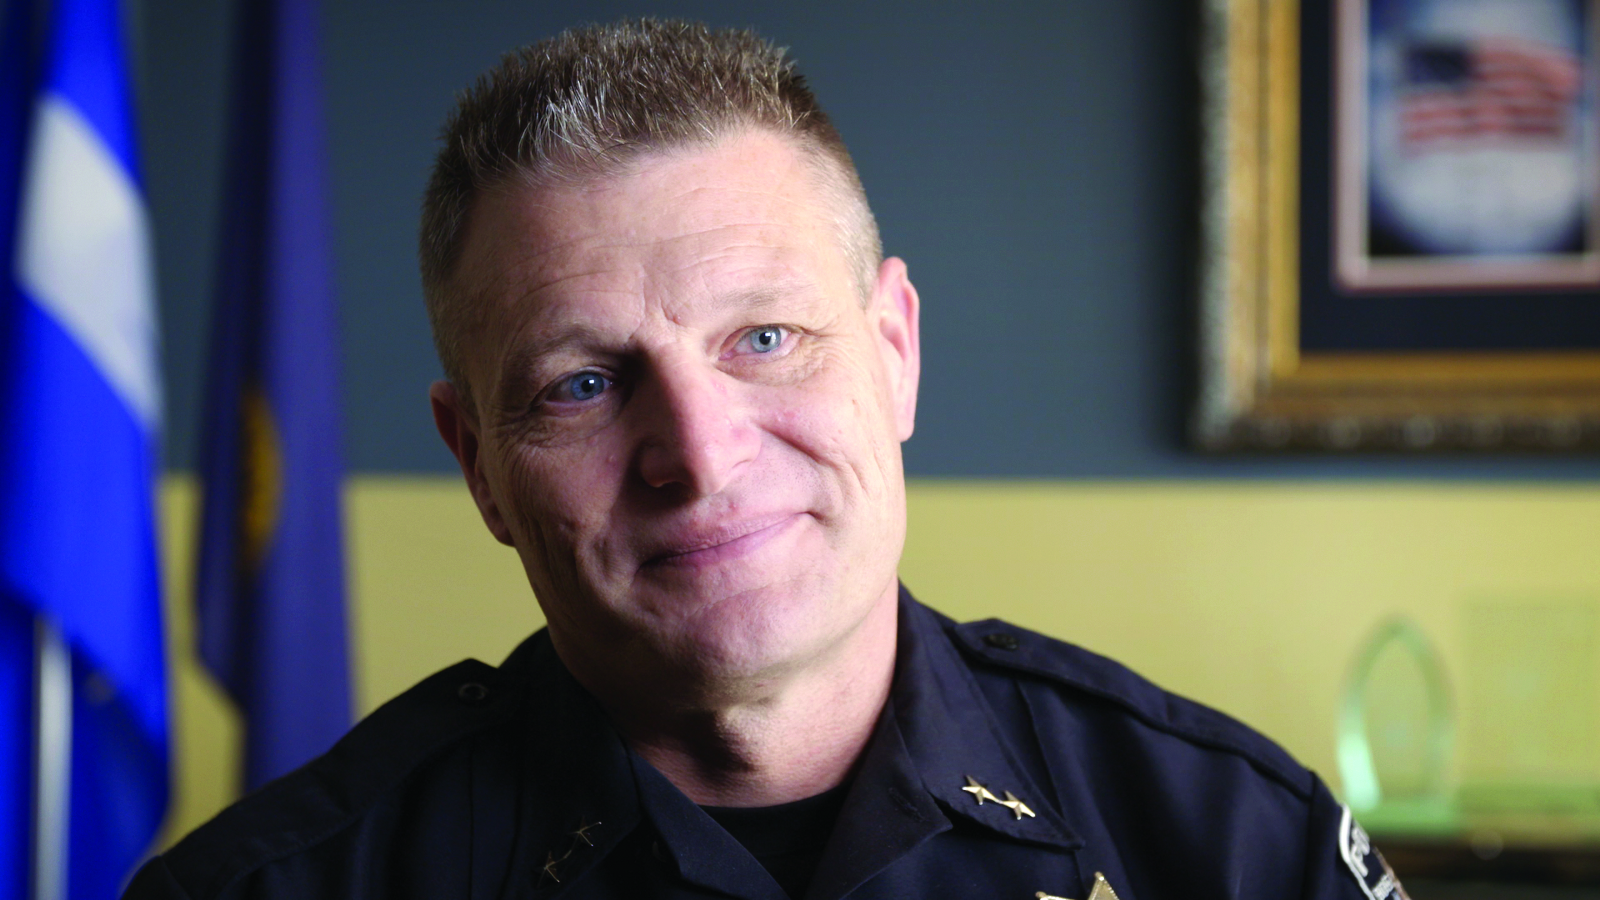 A third-generation police officer, Chief William Bones has served in the Boise Police Department for 25 years.